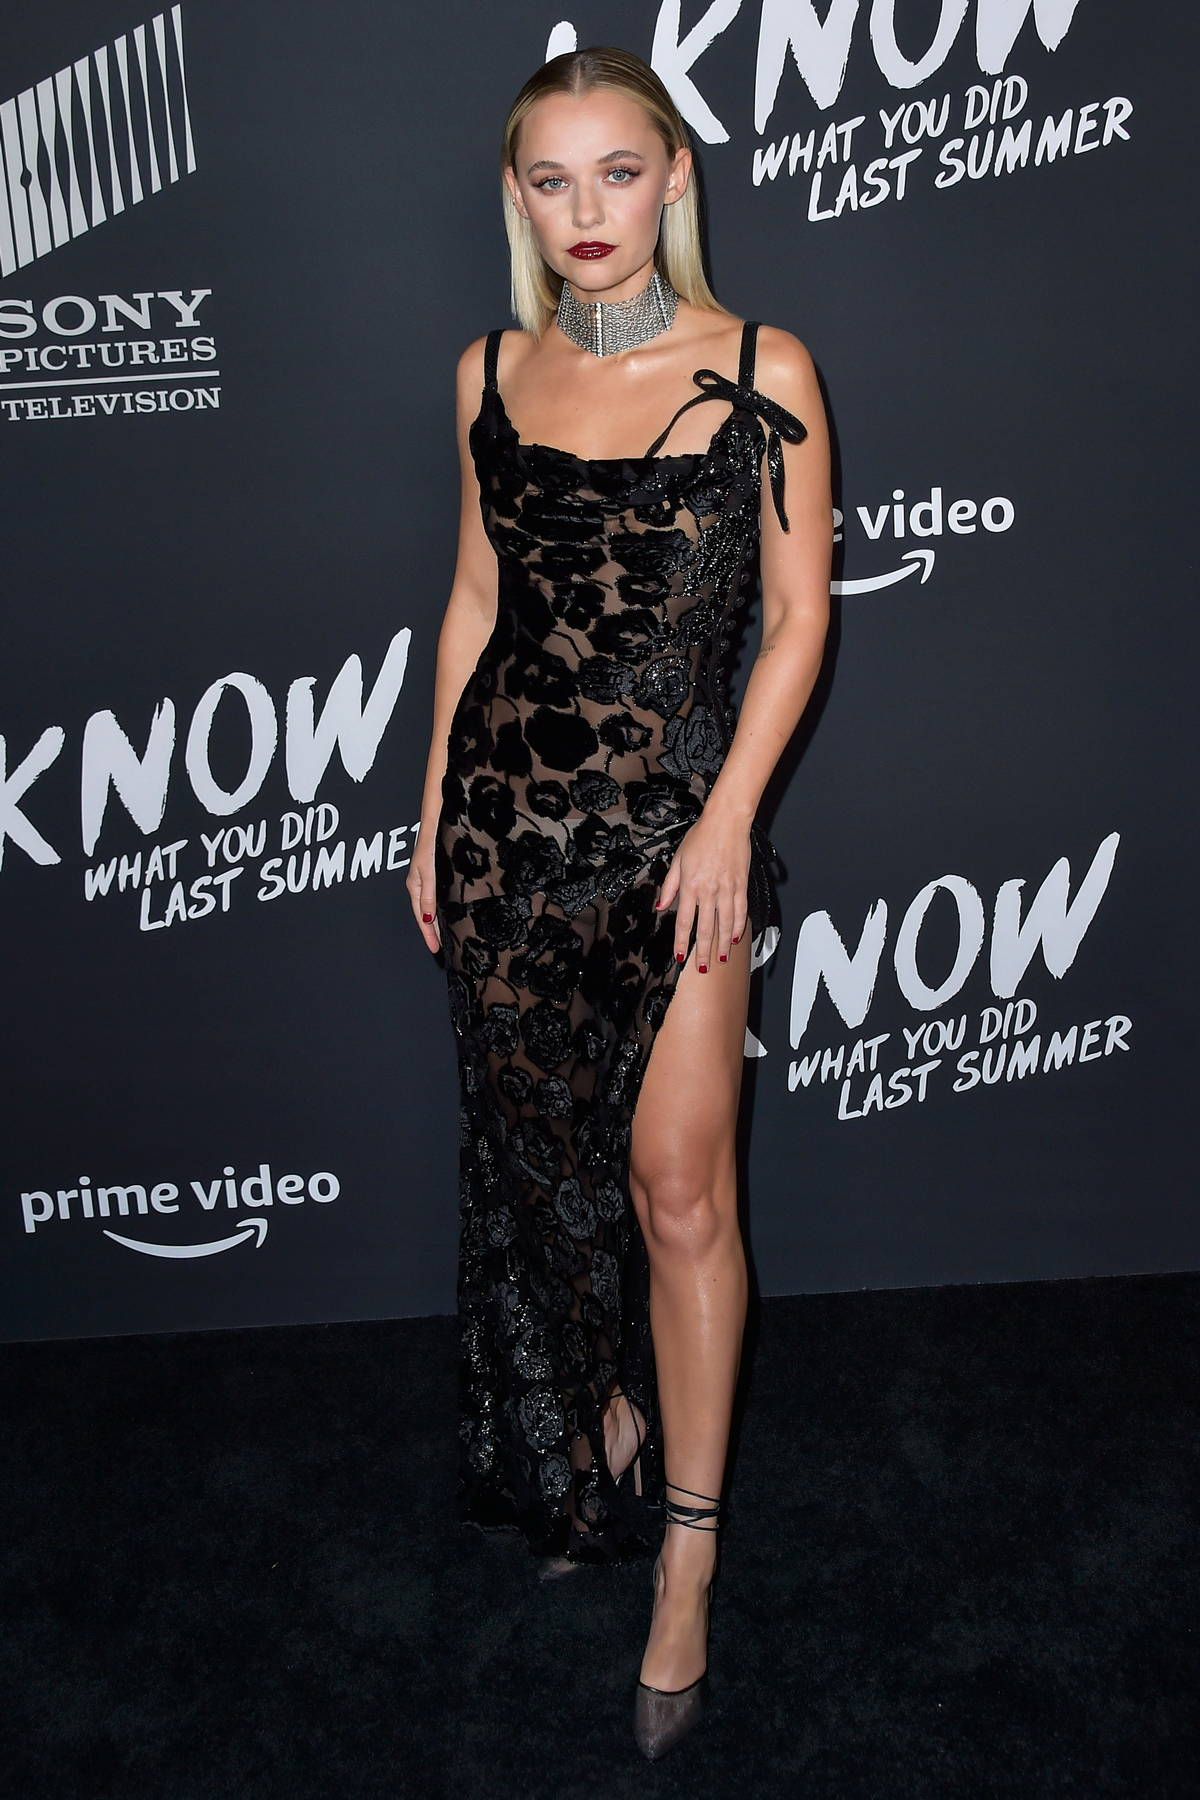 Madison Iseman attends the Premiere of 'I Know What You Did Last Summer' at The Hollywood Roosevelt in Los Angeles